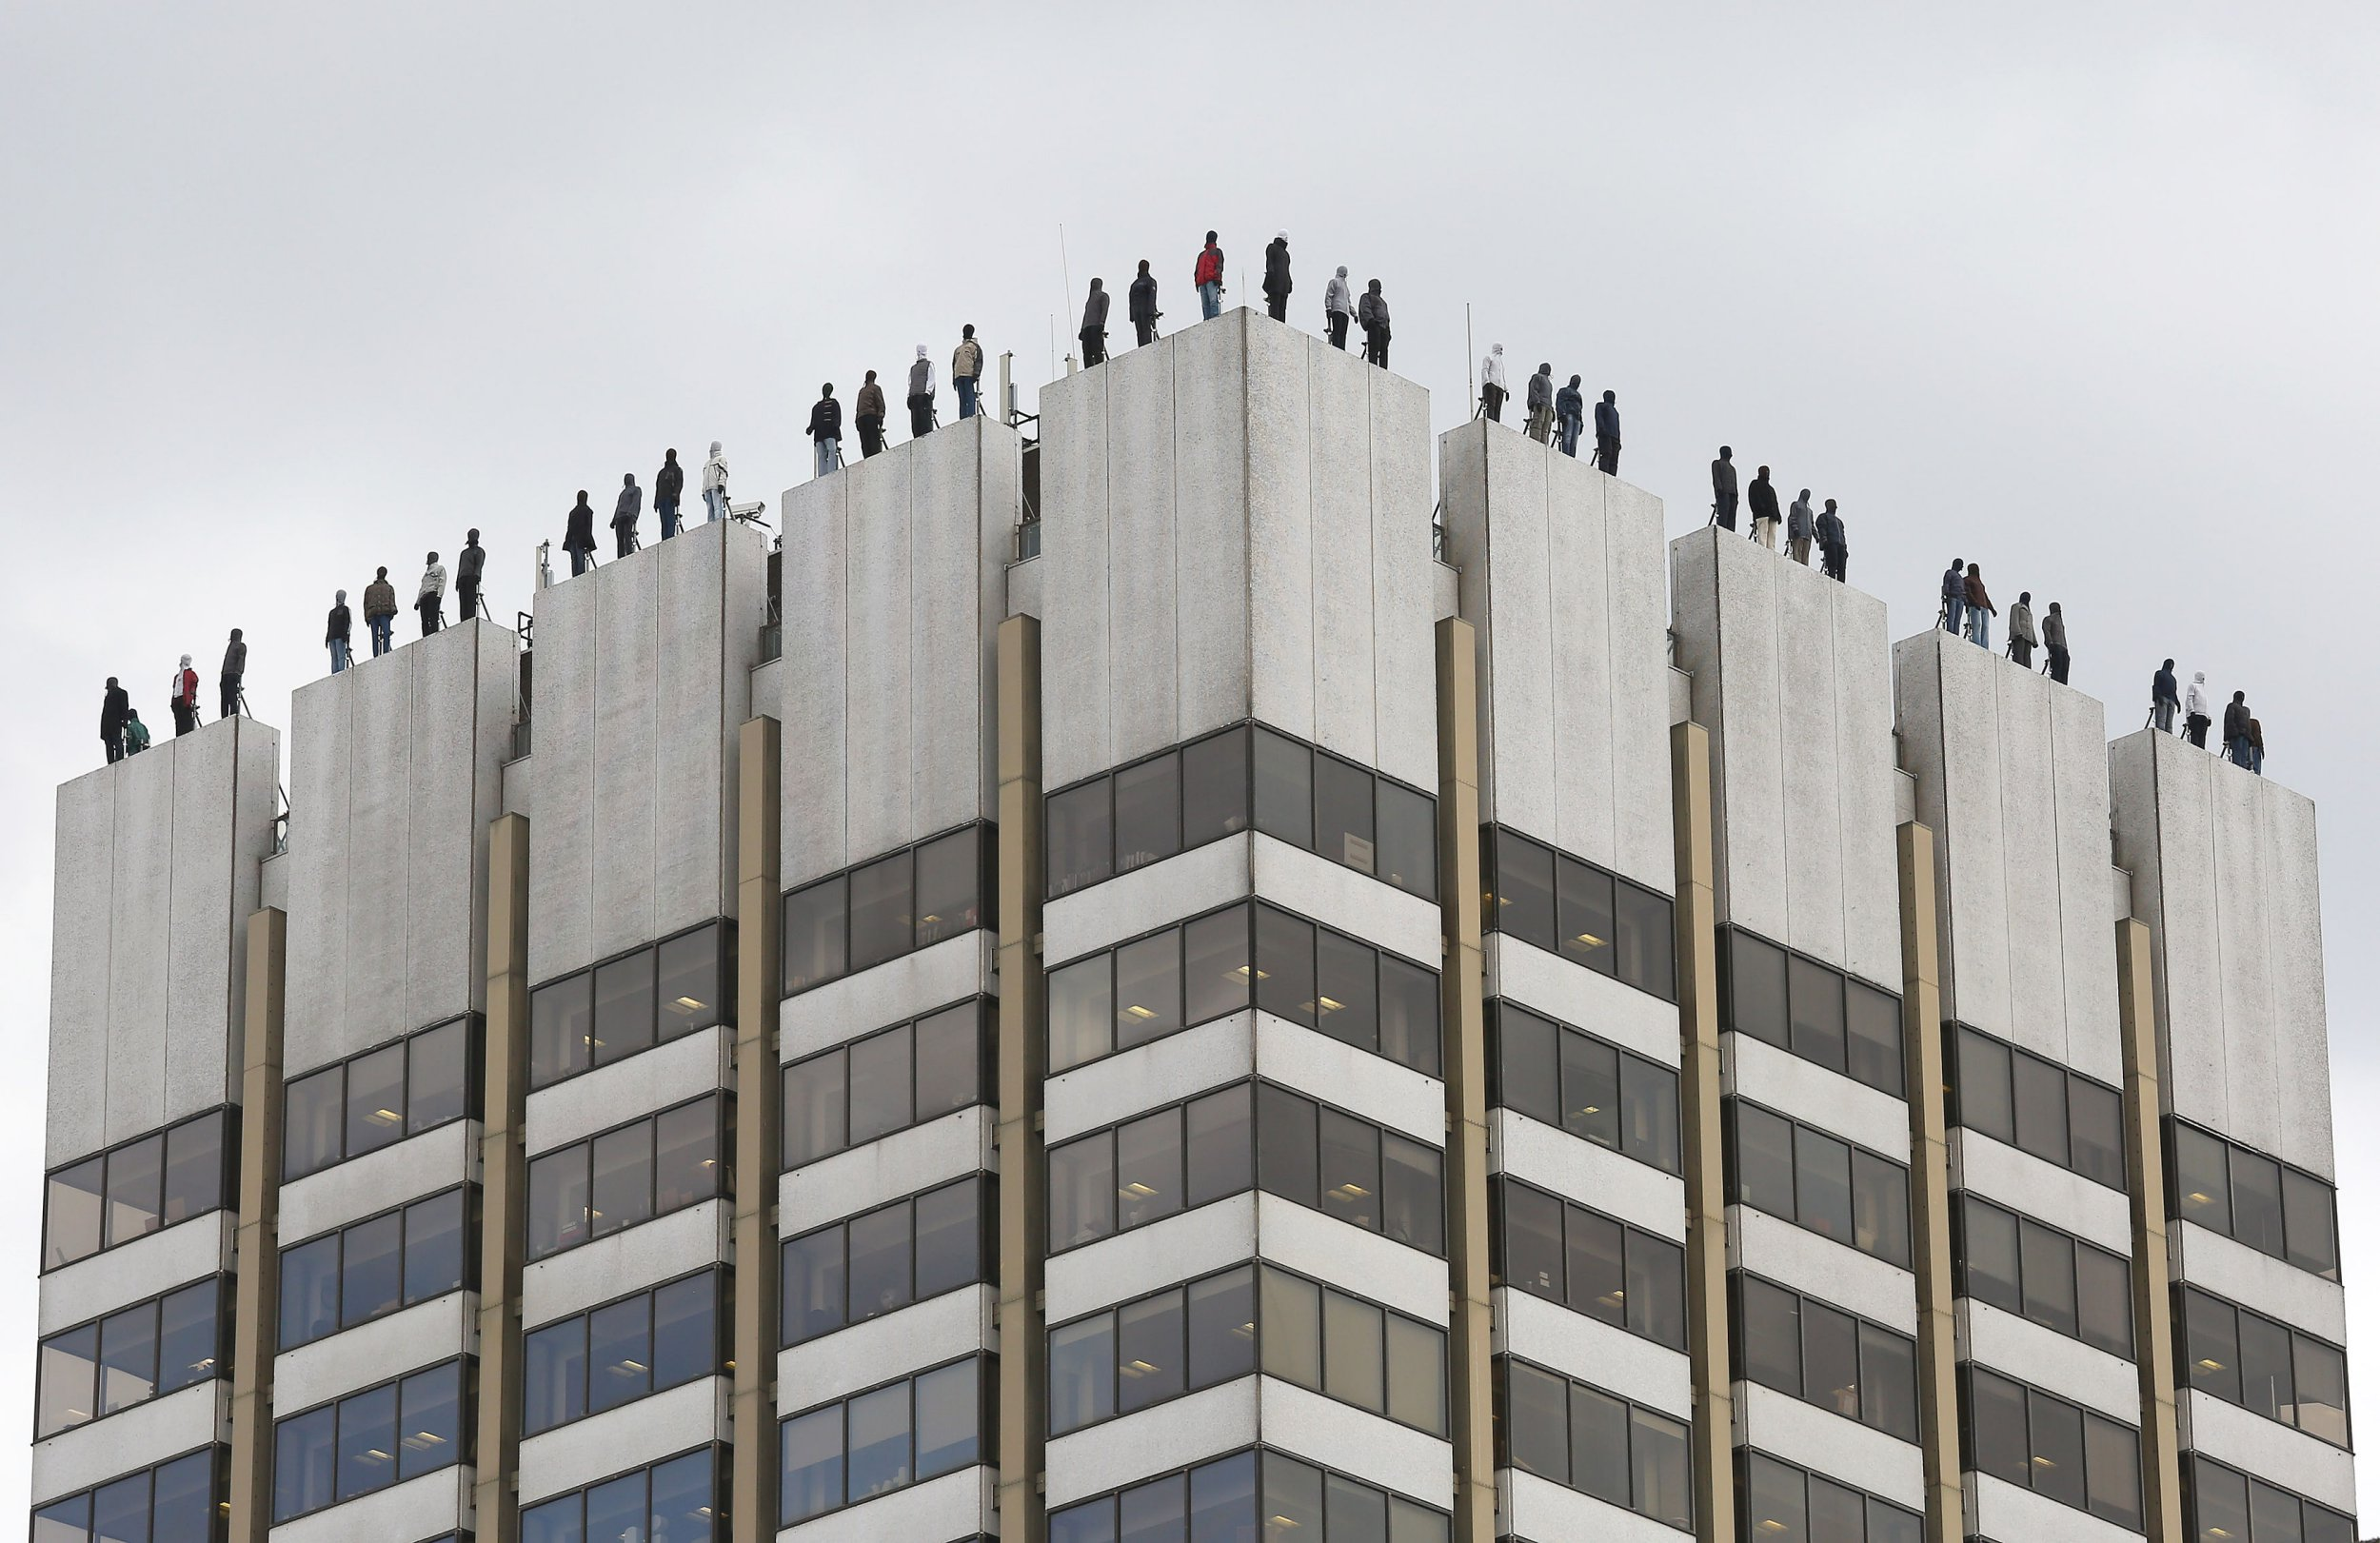 The sculptures of 84 men, made by American artist Mark Jenkins and his collaborator, Sandra Fernandez, part of Project 84, a campaign to raise awareness of the fact that 84 men take their own lives every week in the UK, ontop of London Television Centre after the installation was unveiled. PRESS ASSOCIATION Photo. Picture date: Monday March 26, 2018. See PA story SHOWBIZ Morning. Photo credit should read: Philip Toscano/PA Wire